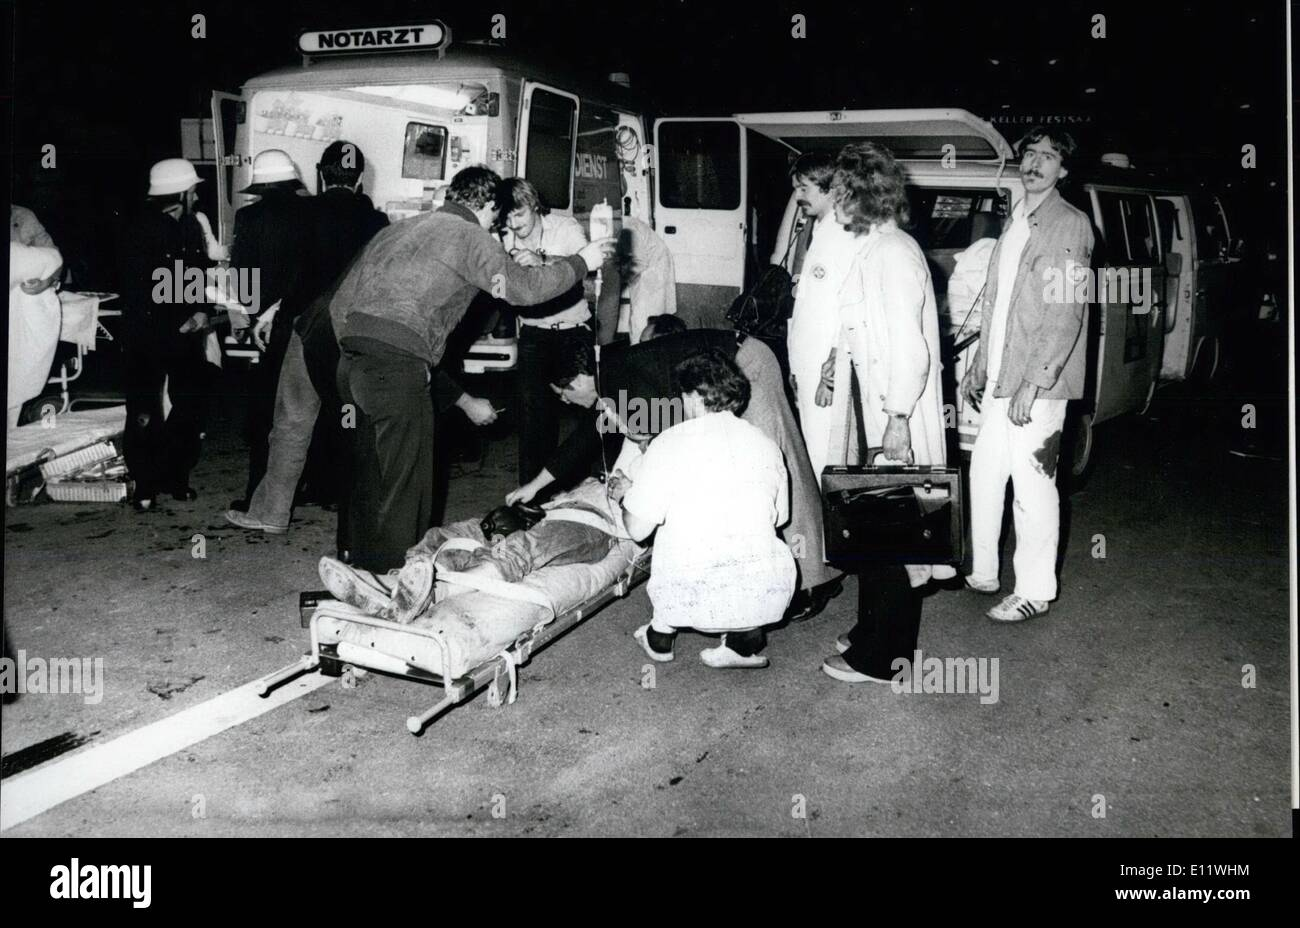 Sep. 09, 1980 - Terrible Bomb-Explosion at Munich ''Oktoberfest'' A terrible disaster happend at the famous ''Oktoberfest'' in Munich/West Germany in the evening of September 26th, 1980. About 22:30 O'clock at the main-exit of the Theresienwise a delayed action cap, which has been deposited in a wate-paper basker, explosed. Only some munutes after the terrible disaster all available fire-brigades, ambulances, also police and different relief organizations have been in action - Stock Image